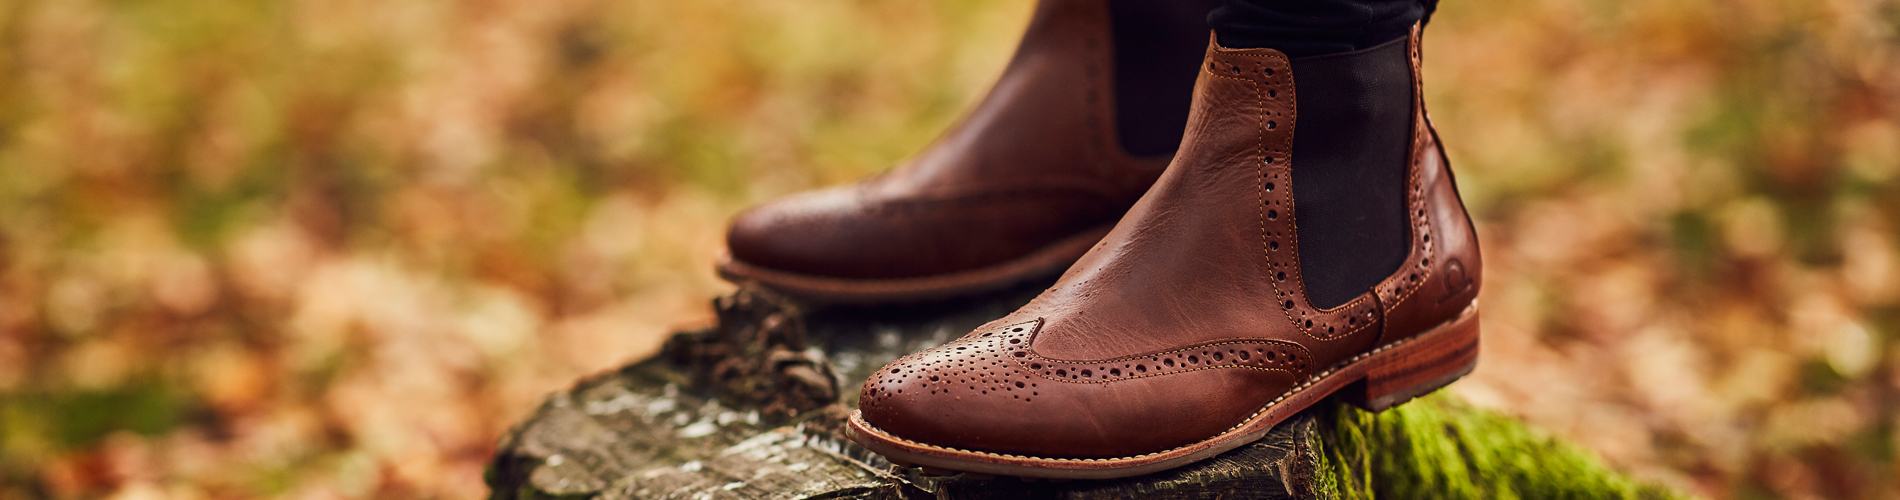 The Chelsea Boot Styles Your Wardrobe Needs